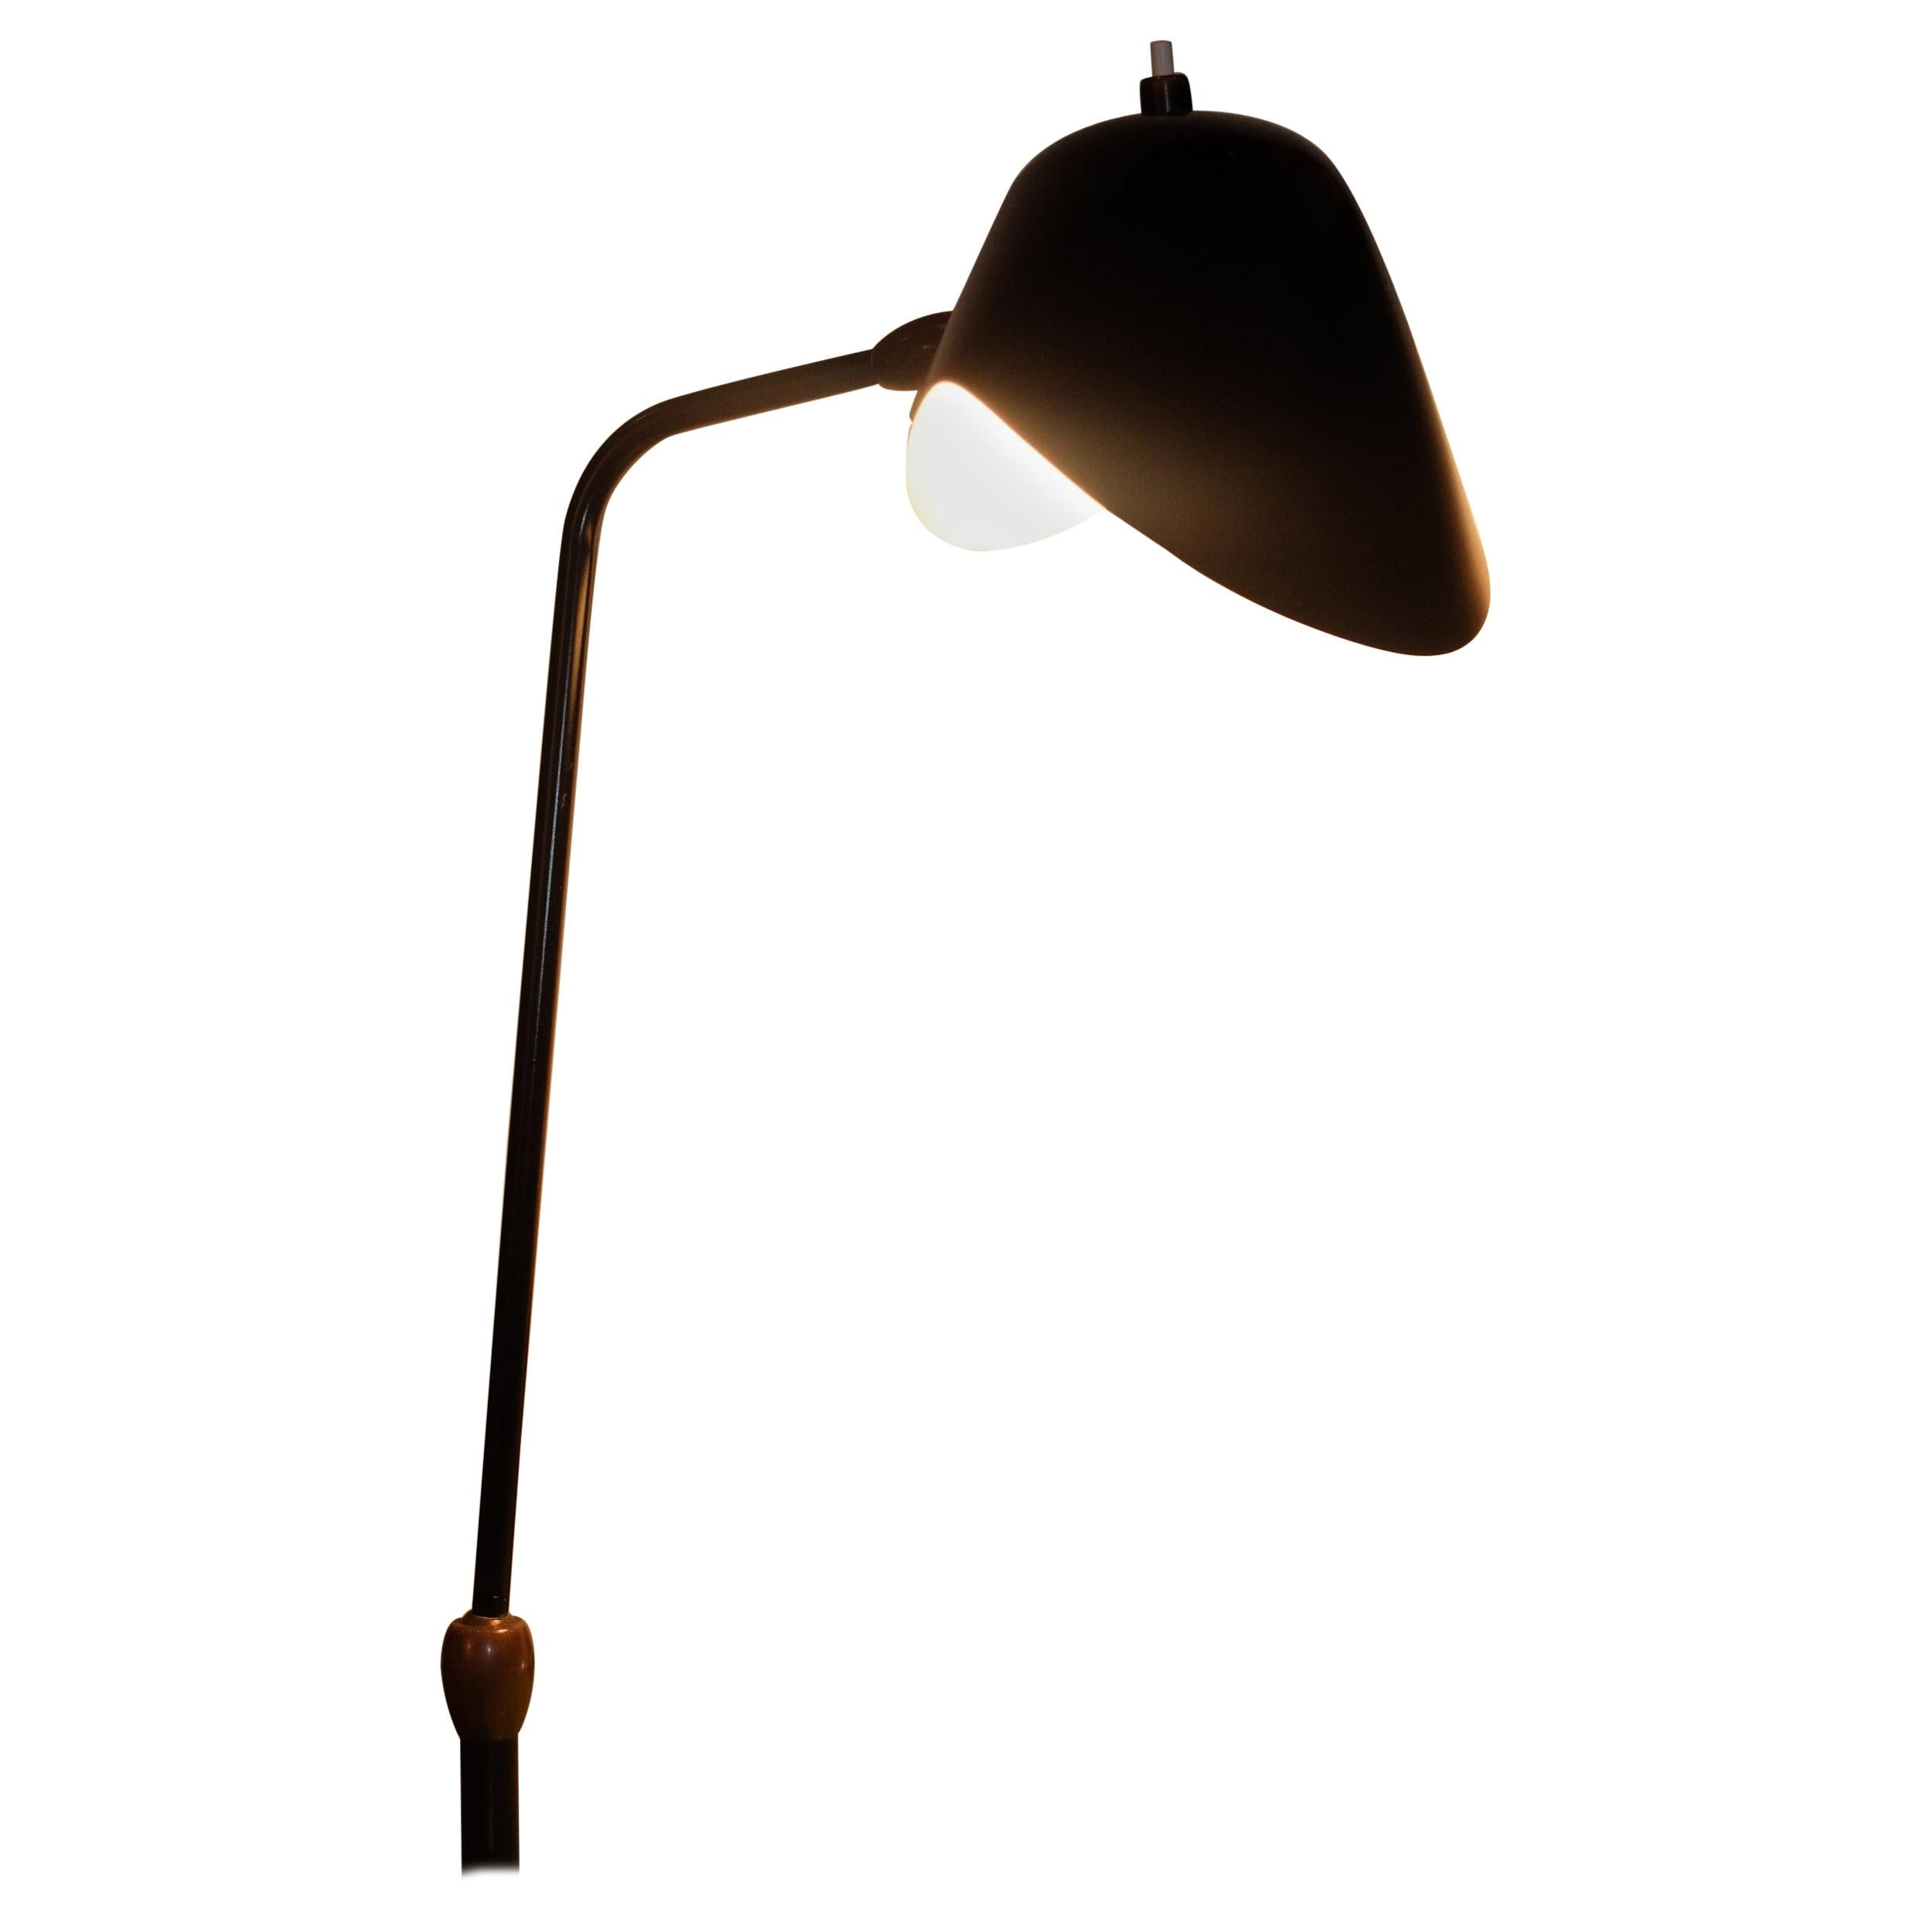 Serge Mouille Clamp Desk Lamp With Double Rotule For Sale